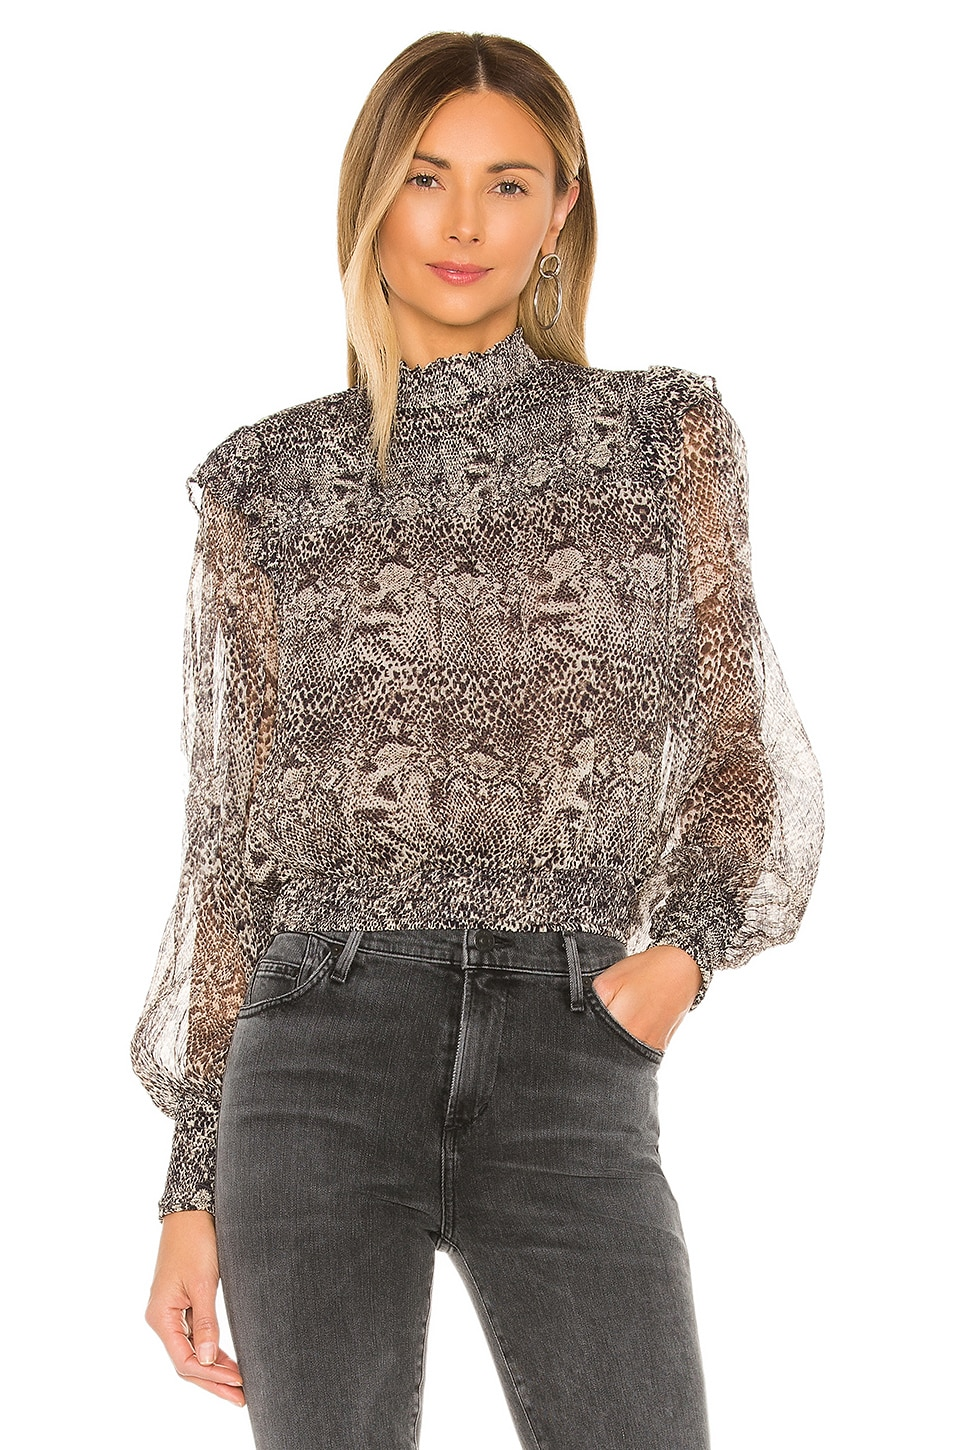 Free People Roma Blouse in Black